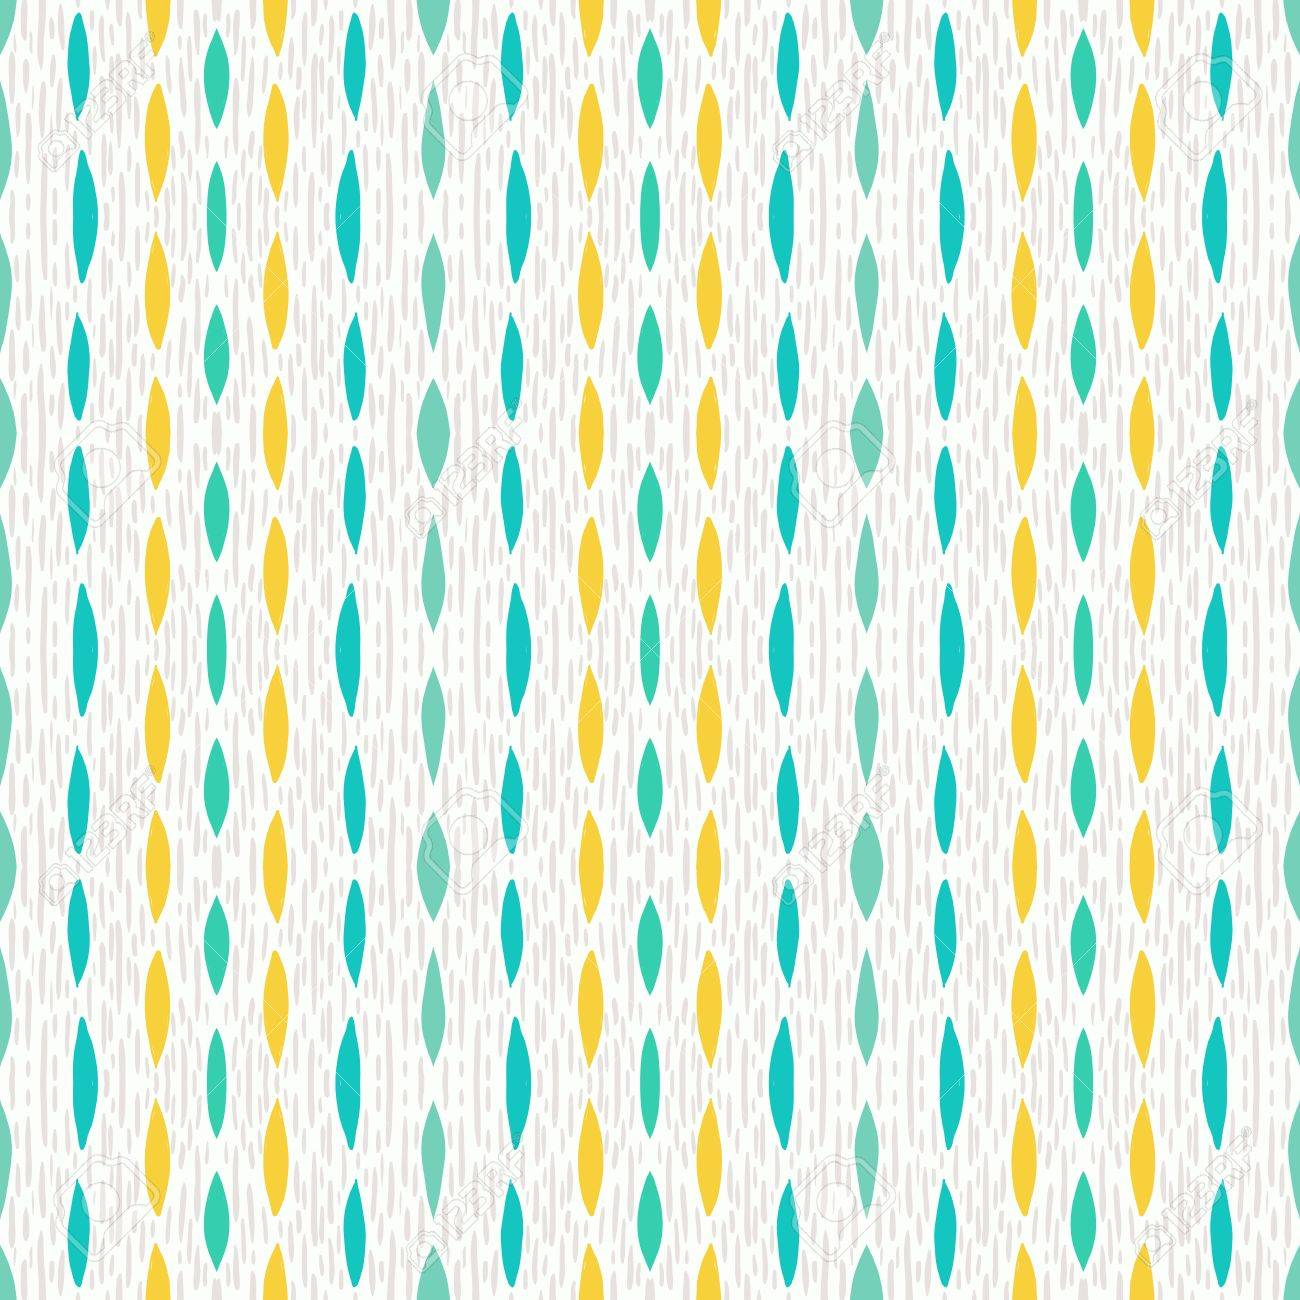 Multicolor seamless pattern with vertical short brushstrokes of random size  Texture for web, print, decor, textile, wrapping paper, invitation background, spring summer fashion Stock Vector - 19331274